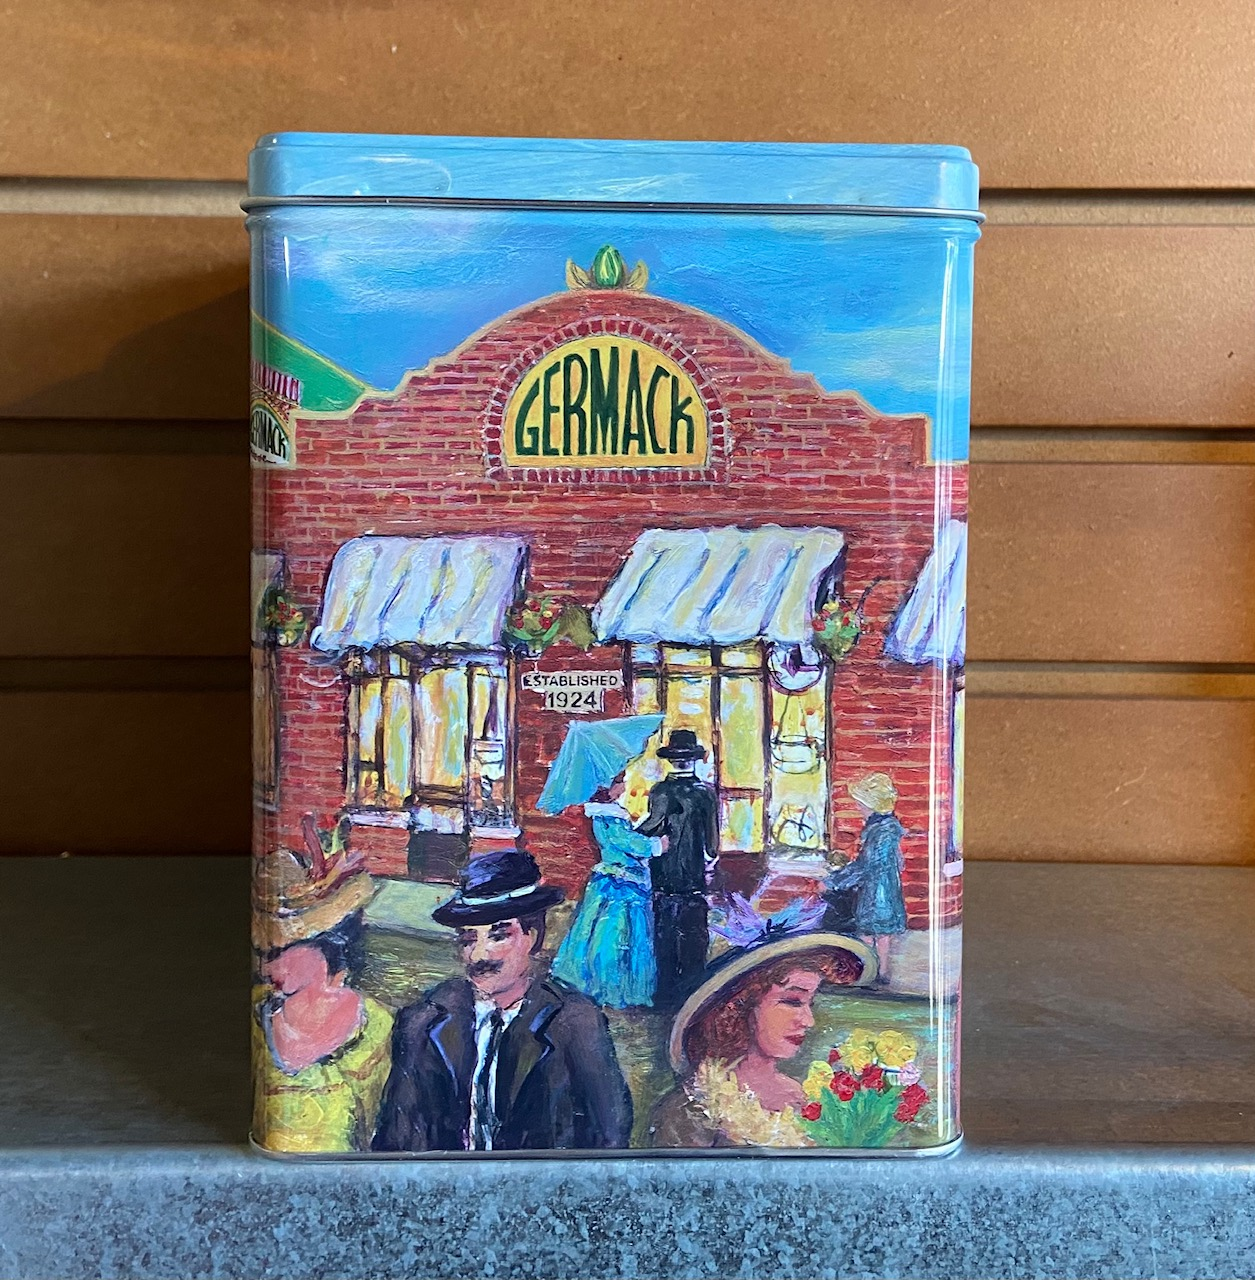 Picture Germack Collectible Tin